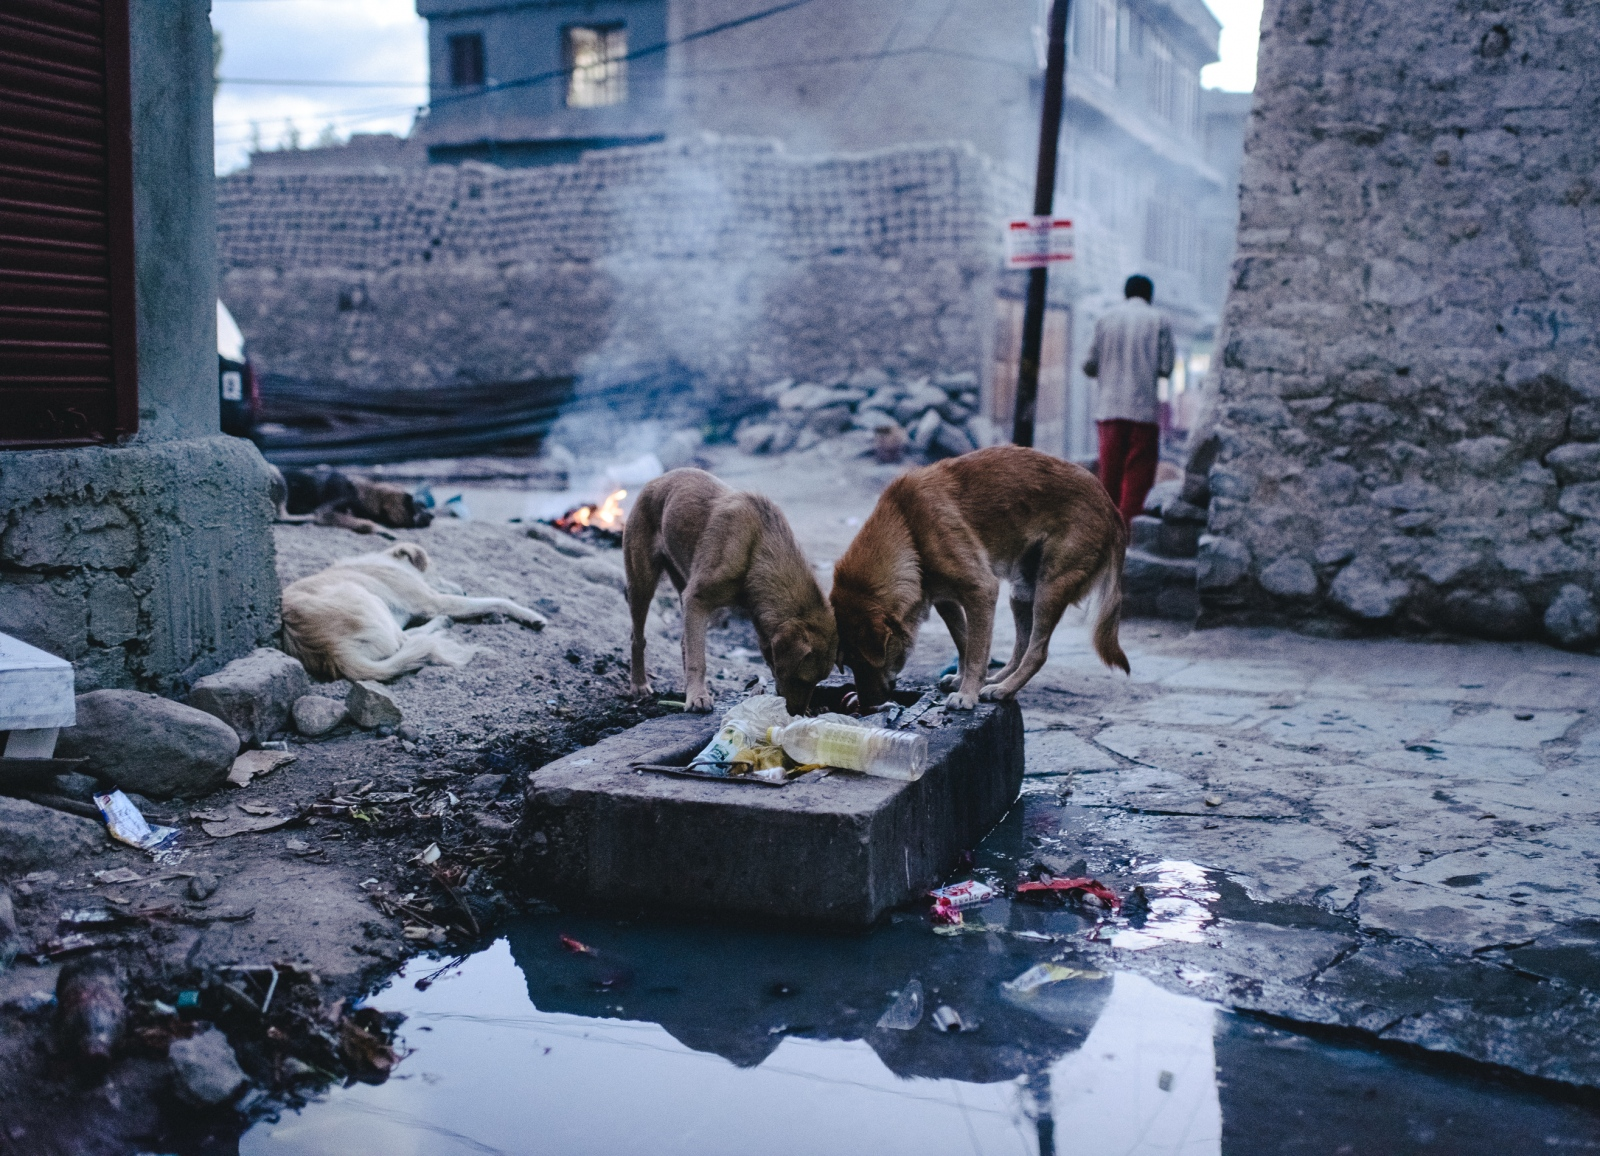 Stray dogssift through trash heeps looking for food behind the central mosque, Jamia Masjid in Leh, Ladakh. Like many cities, the strays risk the prospect of severehealth defects due to contaminated water and poor sanitation.